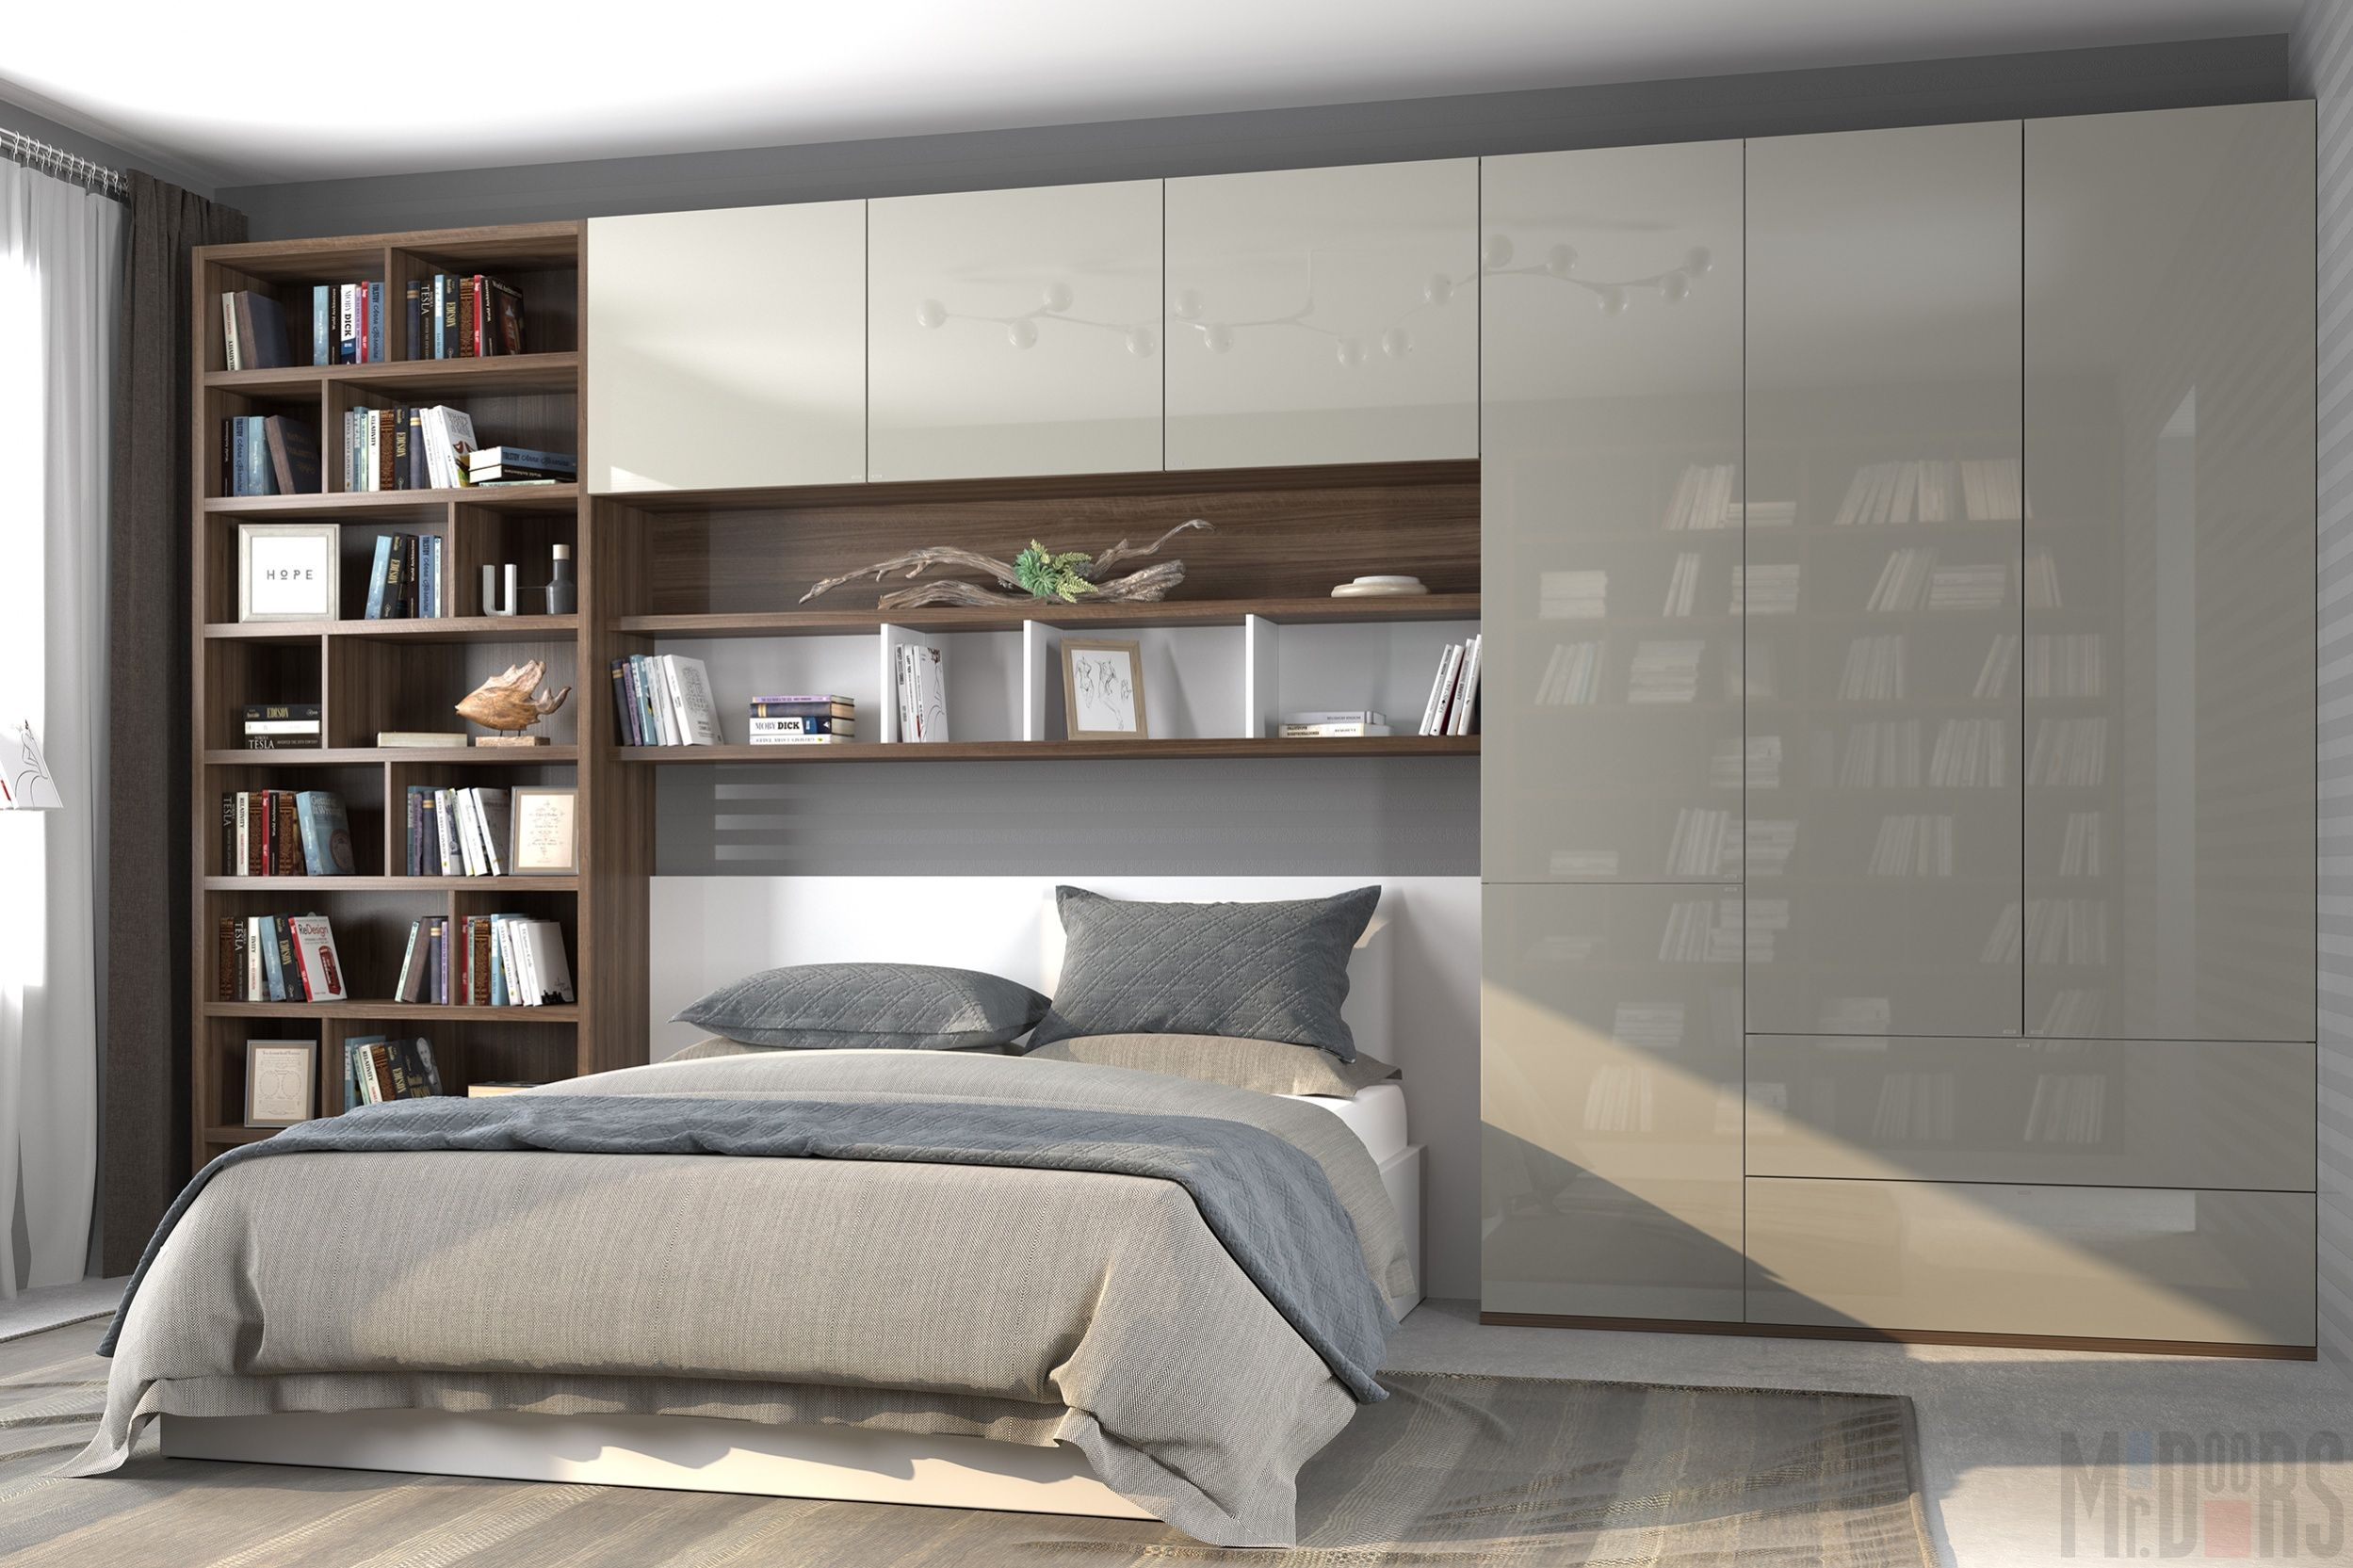 Loft bedroom fitted wardrobes  Image result for built in wardrobes around bed  Yatak odası